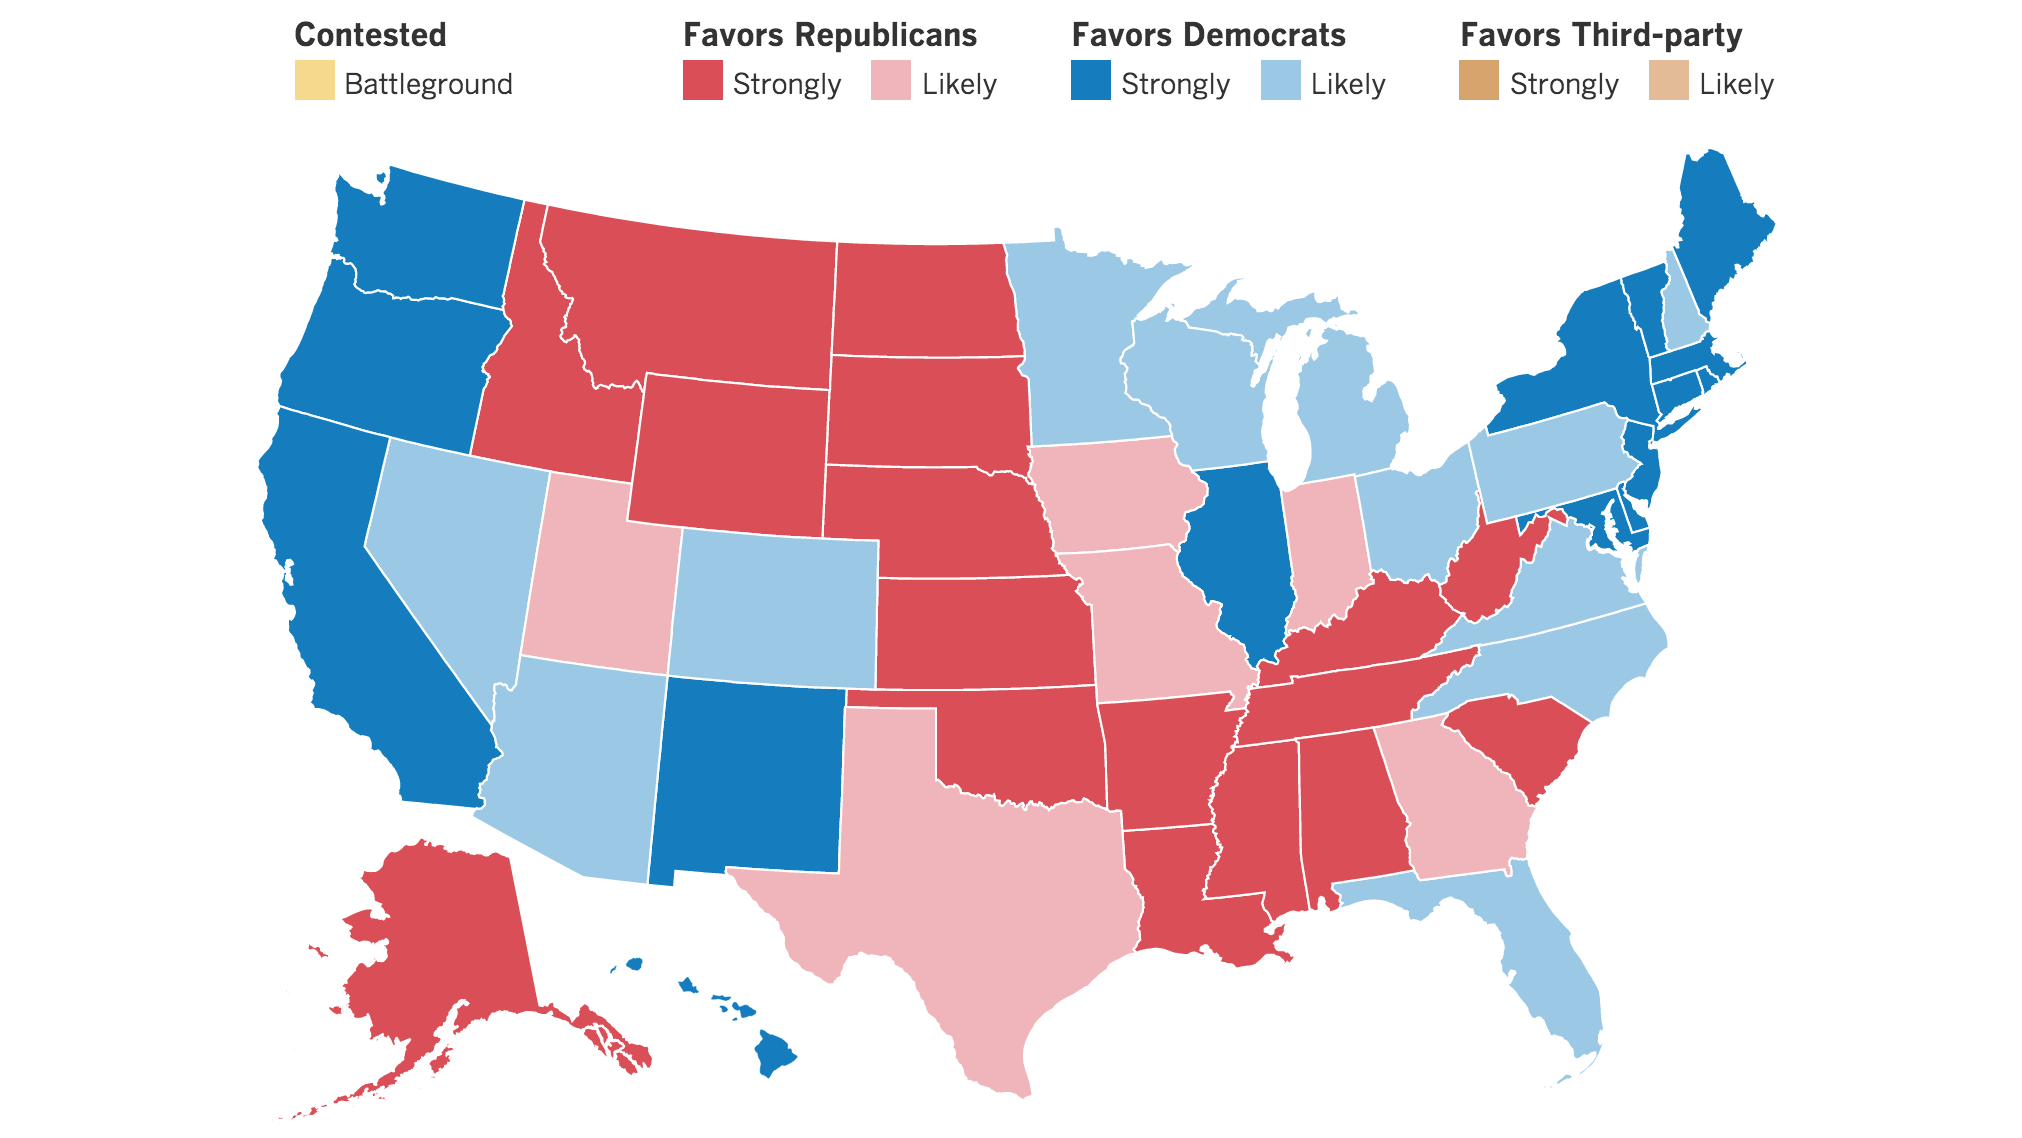 Weve Updated Our Electoral Map More States Move Away From Trump - Us election 2016 map